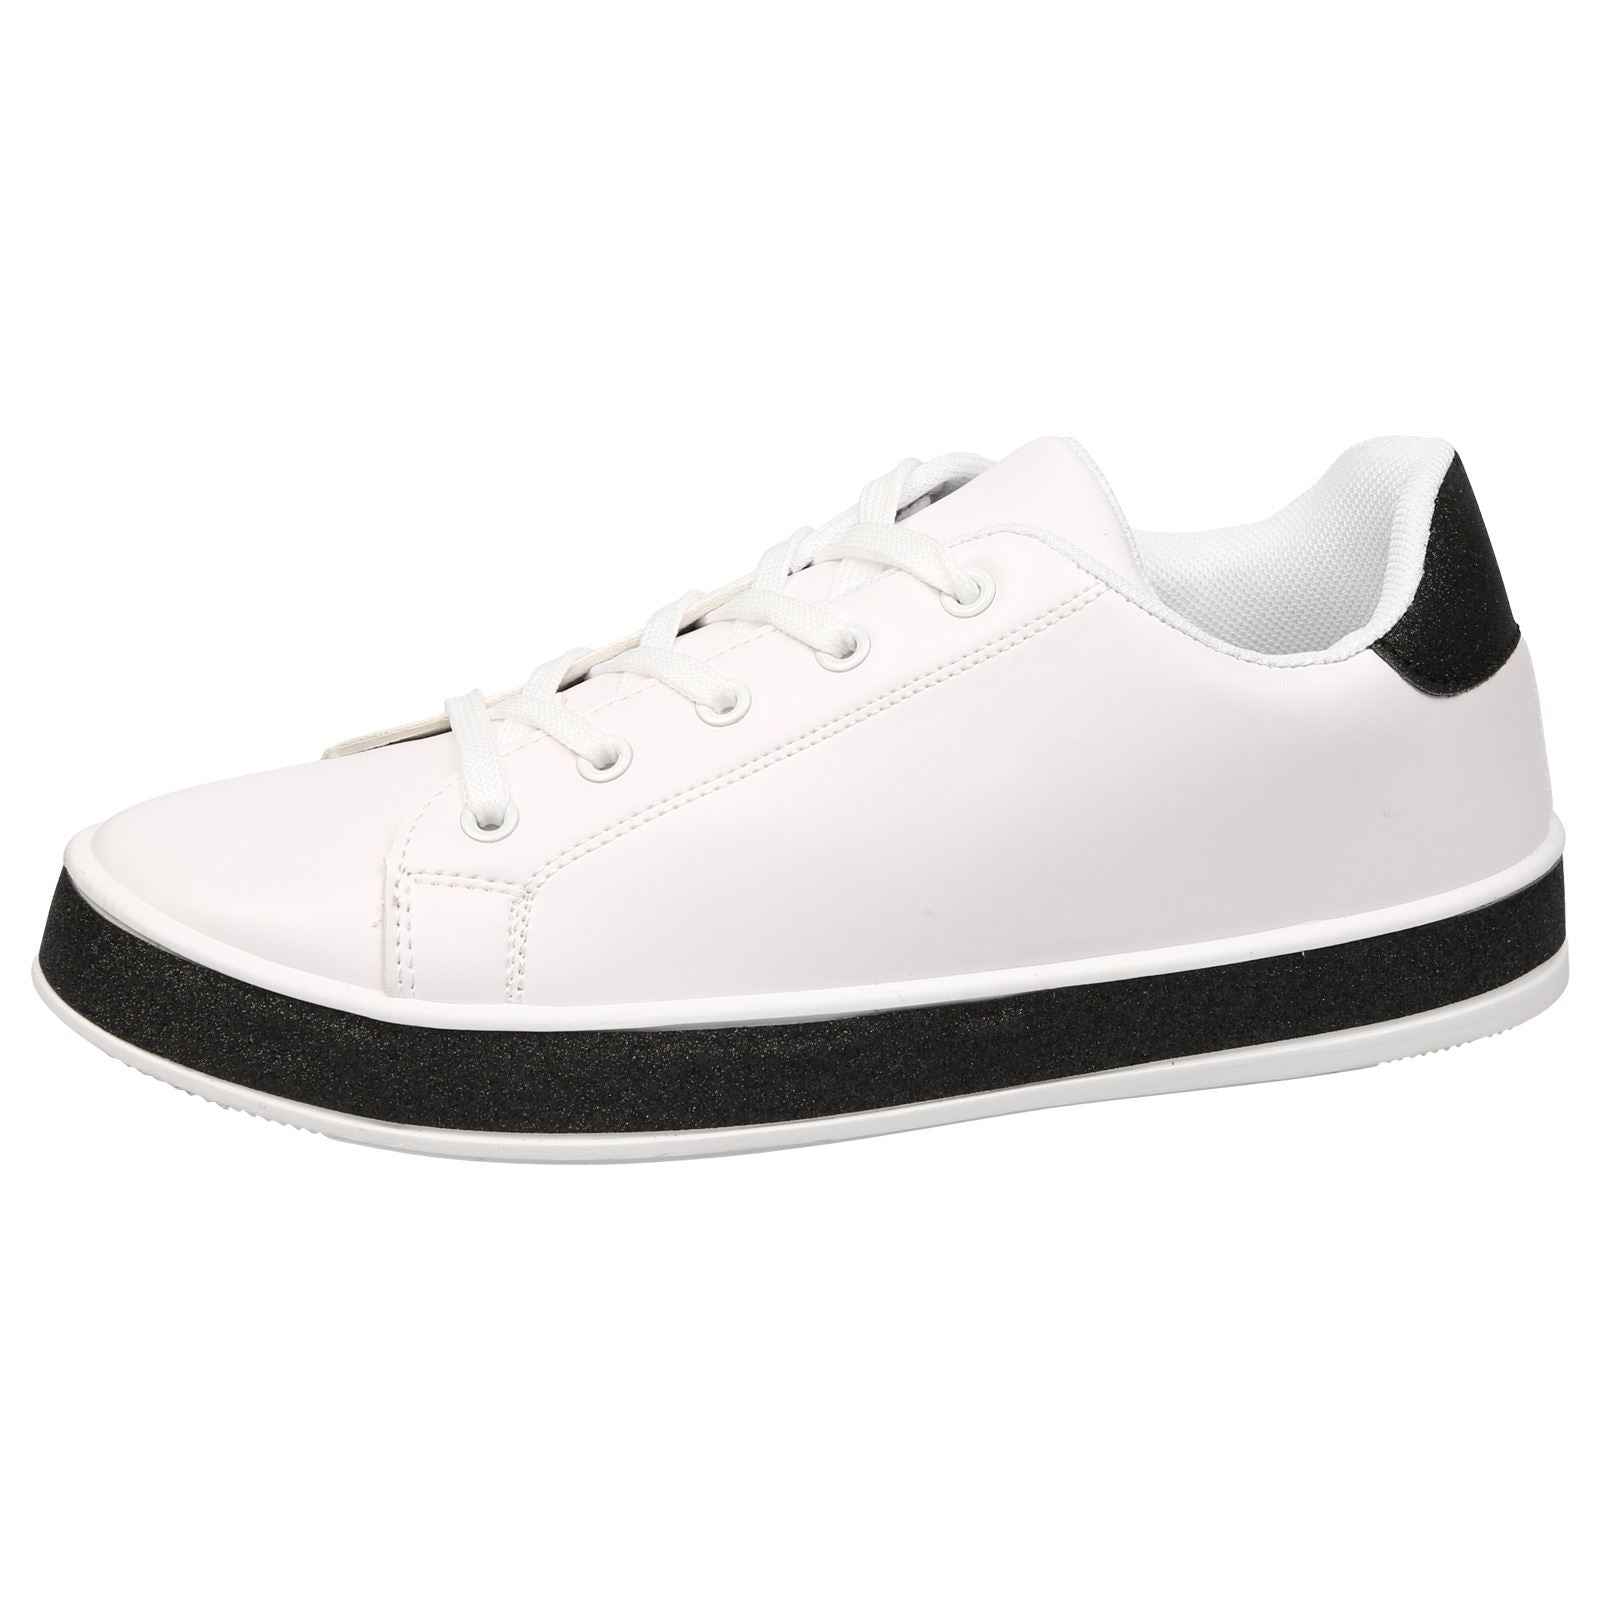 Koko Leather Look Skater Pumps in White with Black Glitter